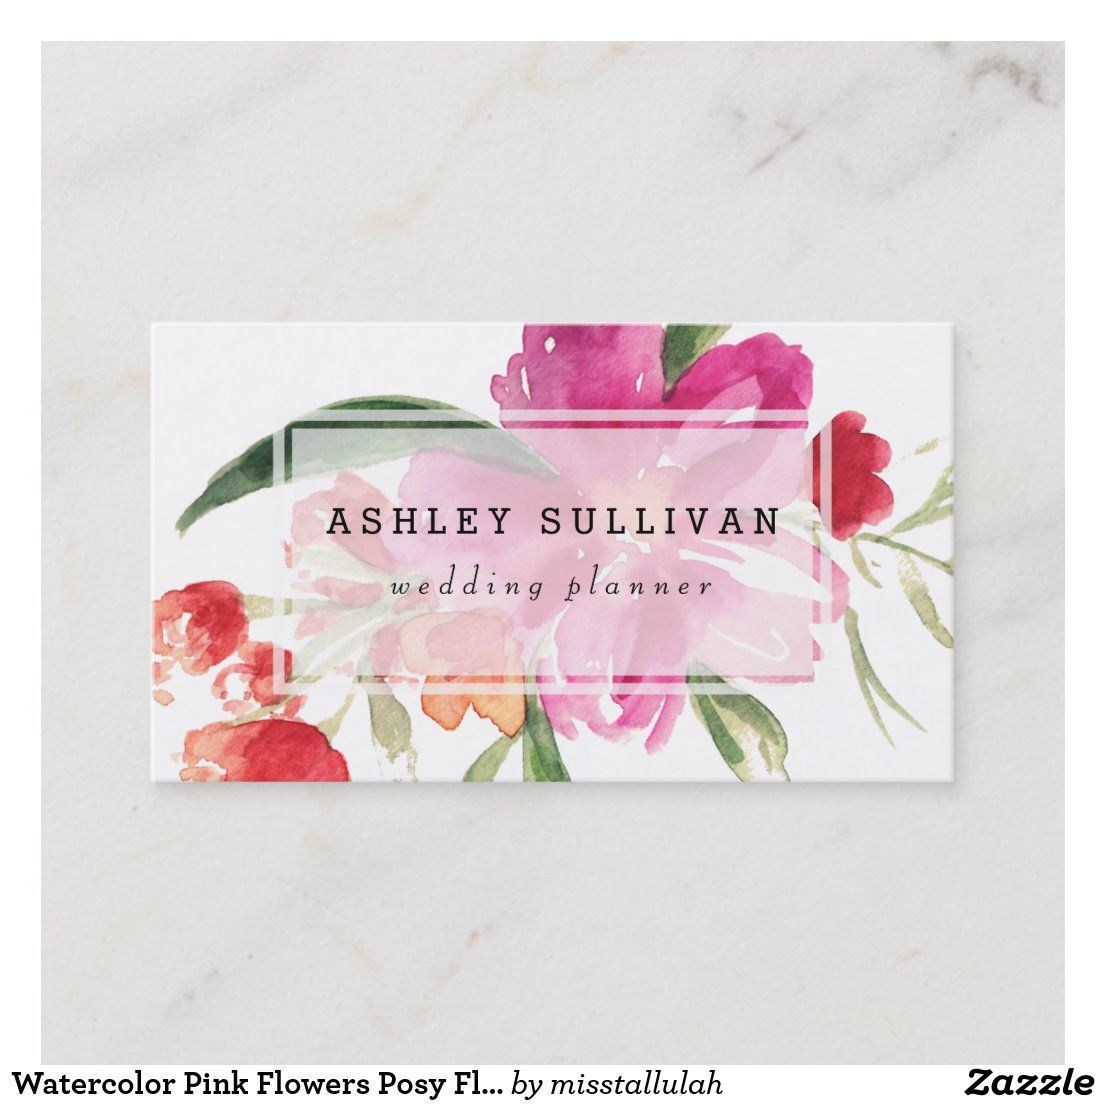 Watercolor Pink Flowers Posy Floral Business Card Zazzle Com Floral Business Cards Pink Watercolor Flower Watercolor Business Cards